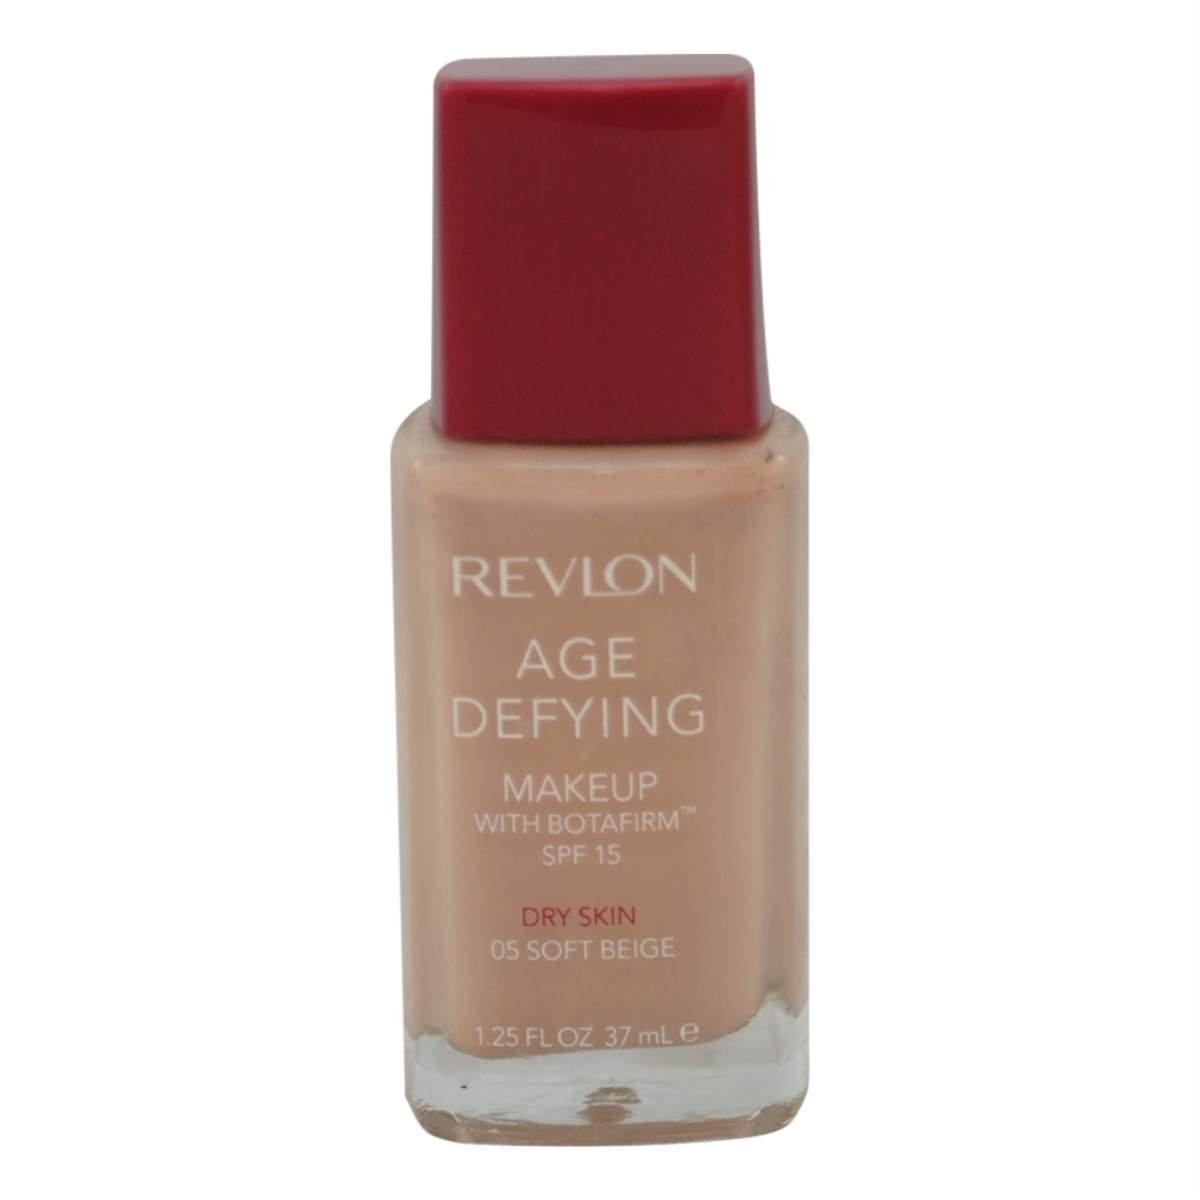 Revlon Age Defying Makeup with Botafirm, SPF 15, Dry Skin, Soft Beige 05, 1.25-Ounce